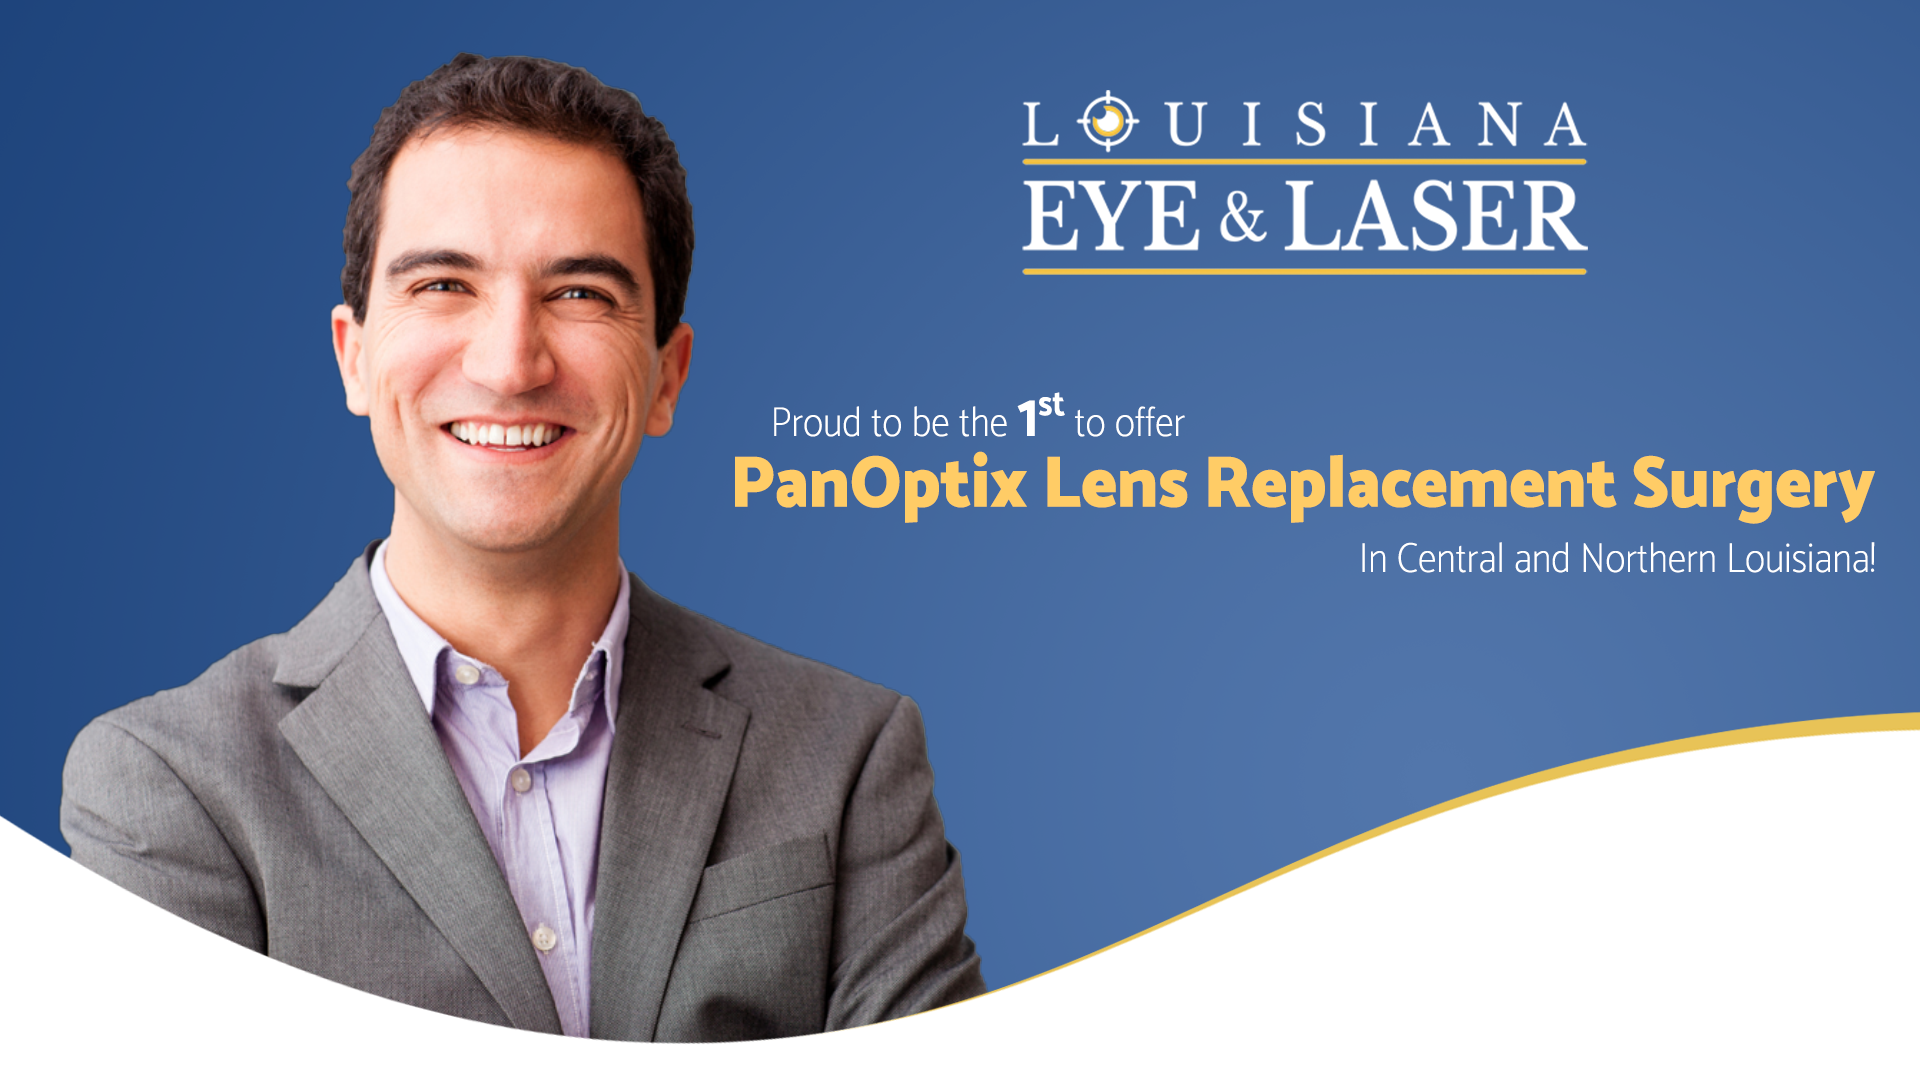 panoptix lens replacement surgery announcement graphic